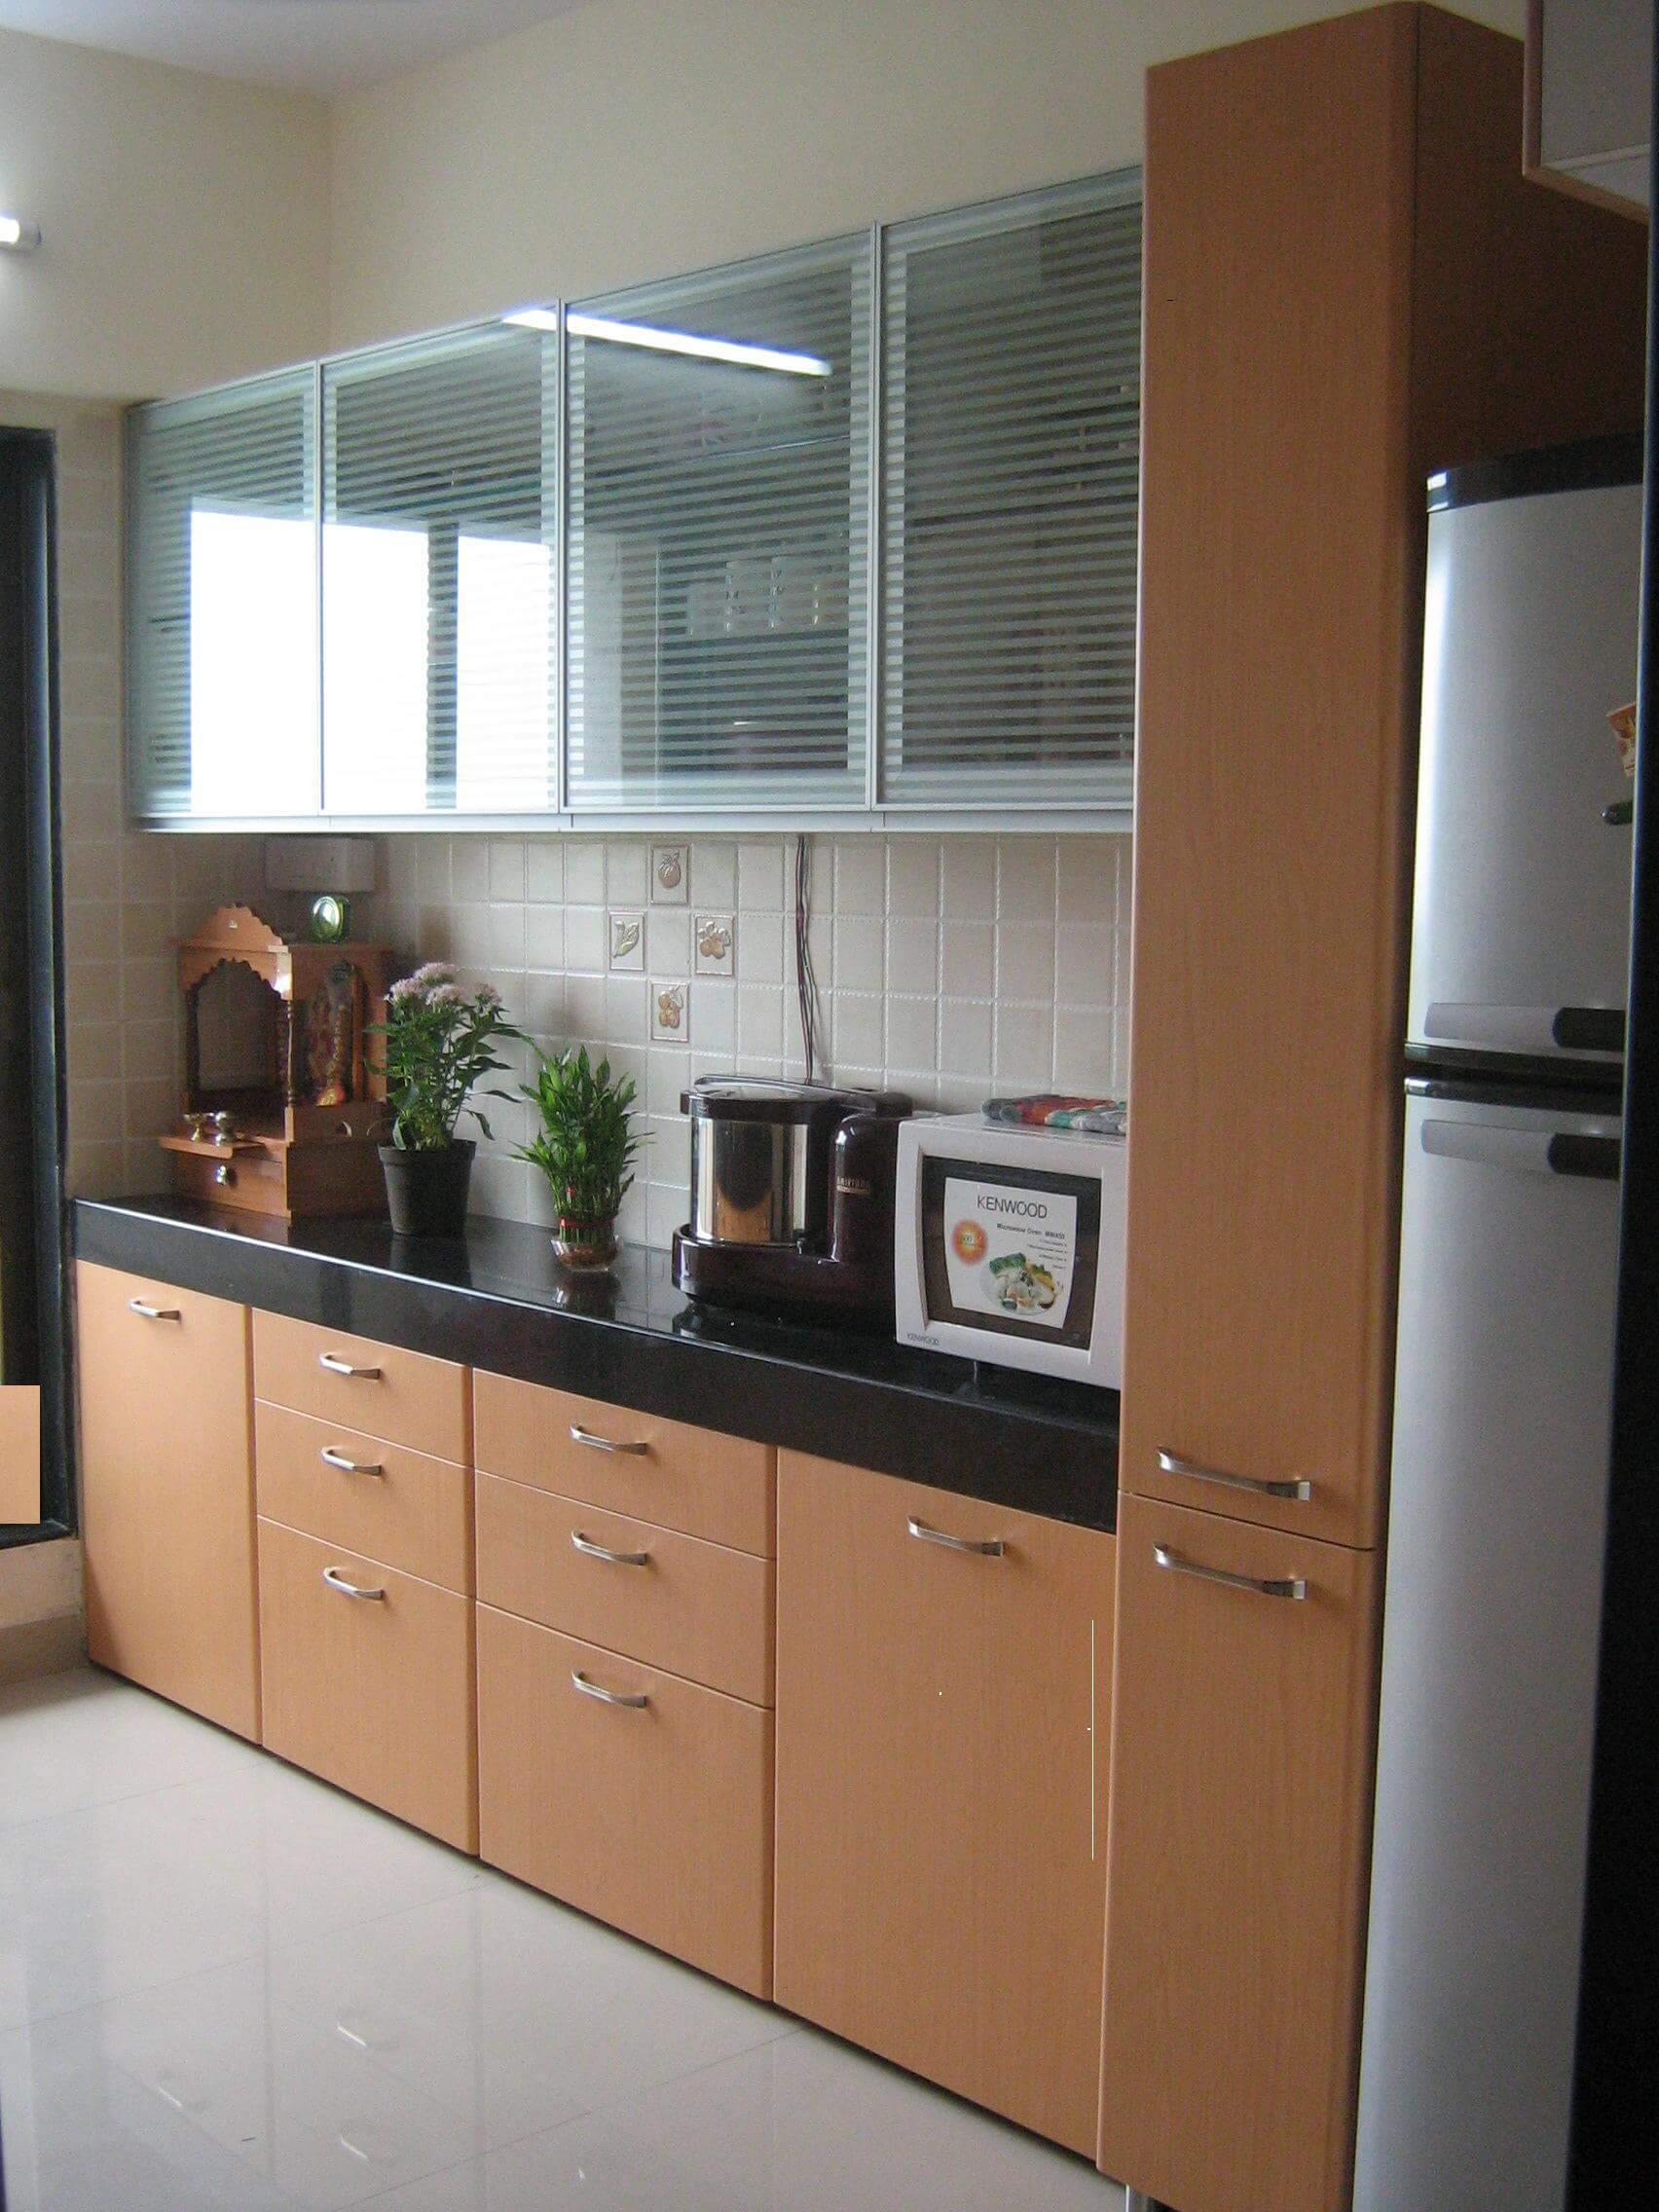 Mumbai Modular Kitchen Site12 Luxus India